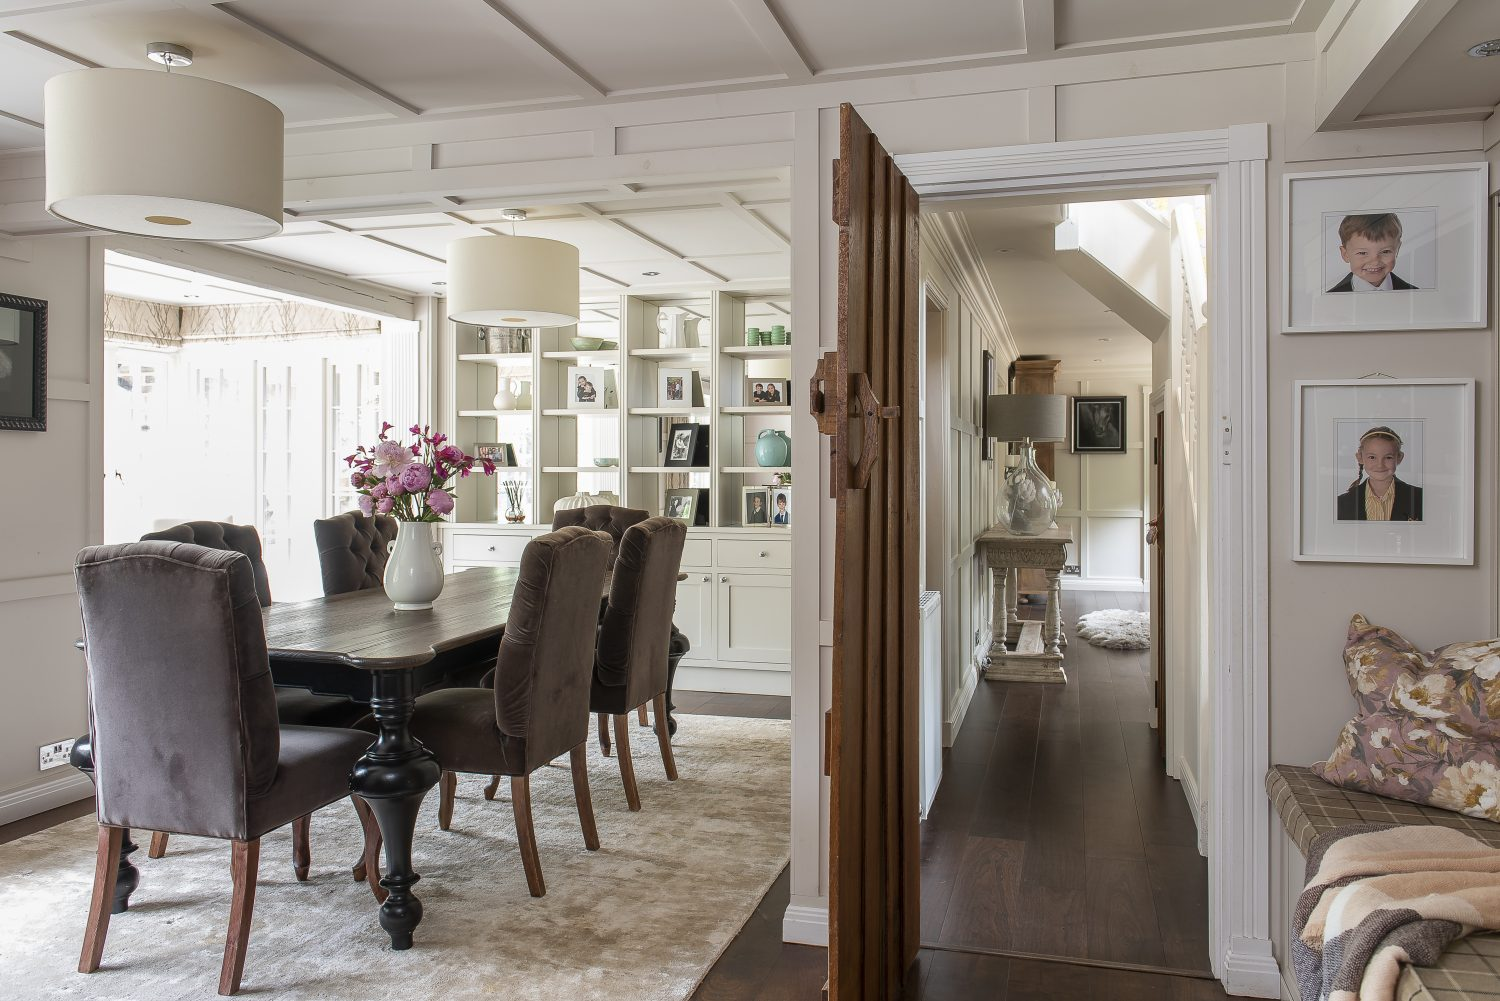 The old kitchen and dining rooms were combined to make one large room. Karen and Rafe made a feature of the panelling here on the ceilings as well as the walls